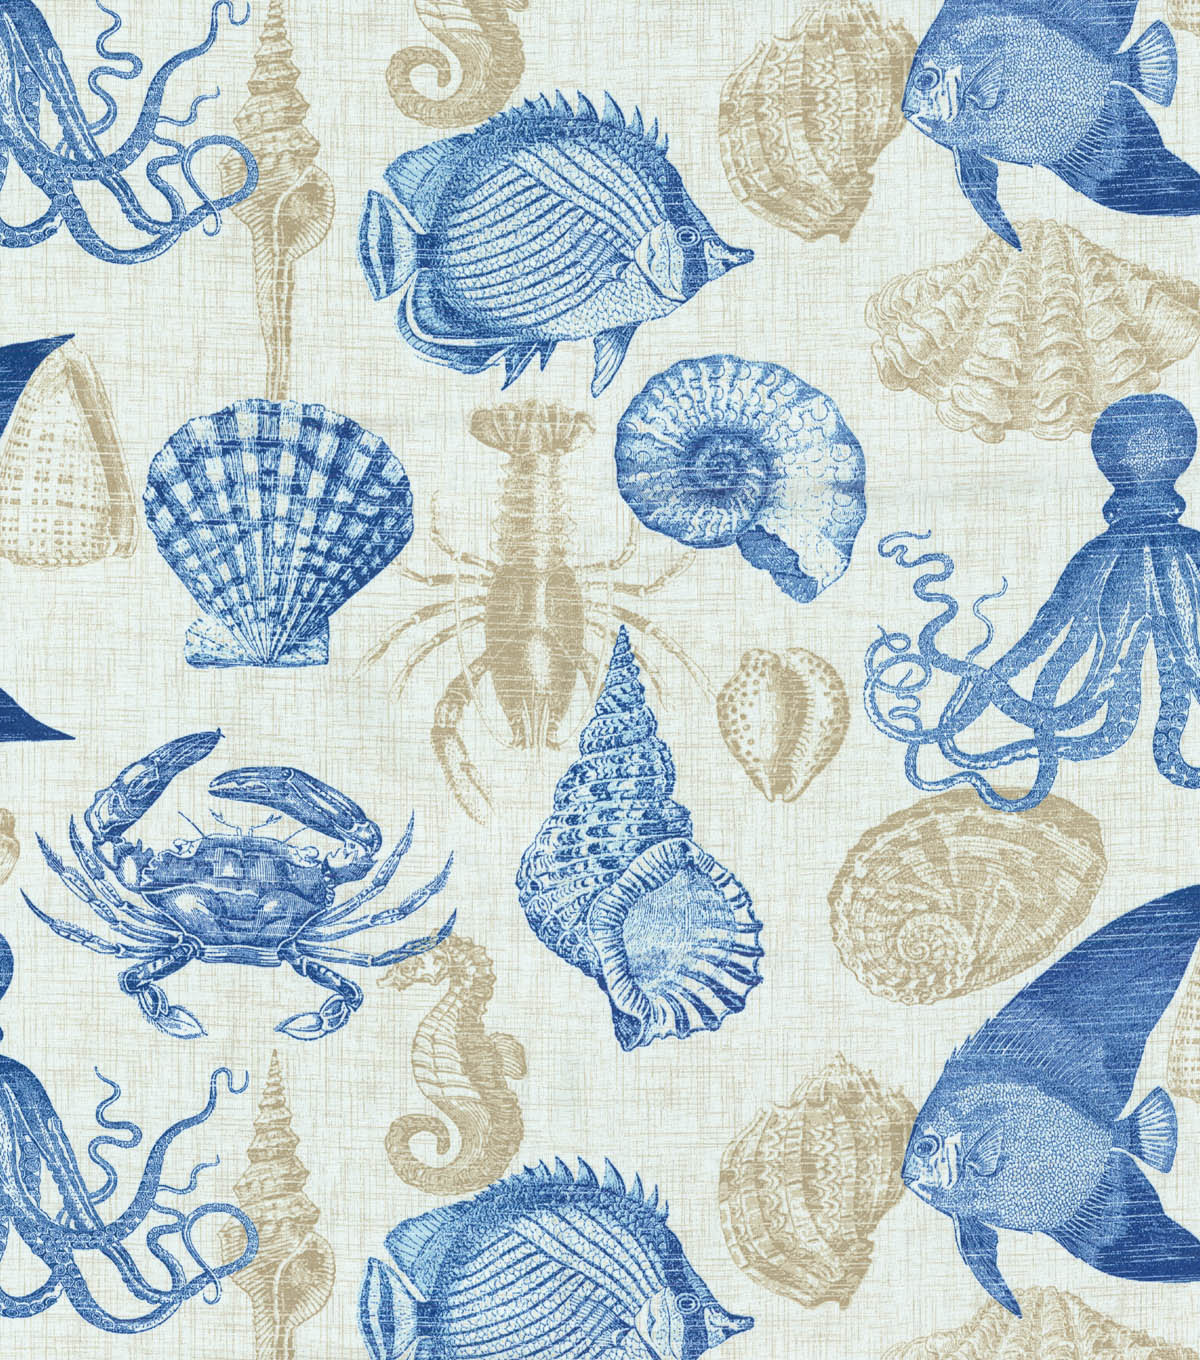 Solarium Outdoor Fabric 54\u0022 Sealife Marine